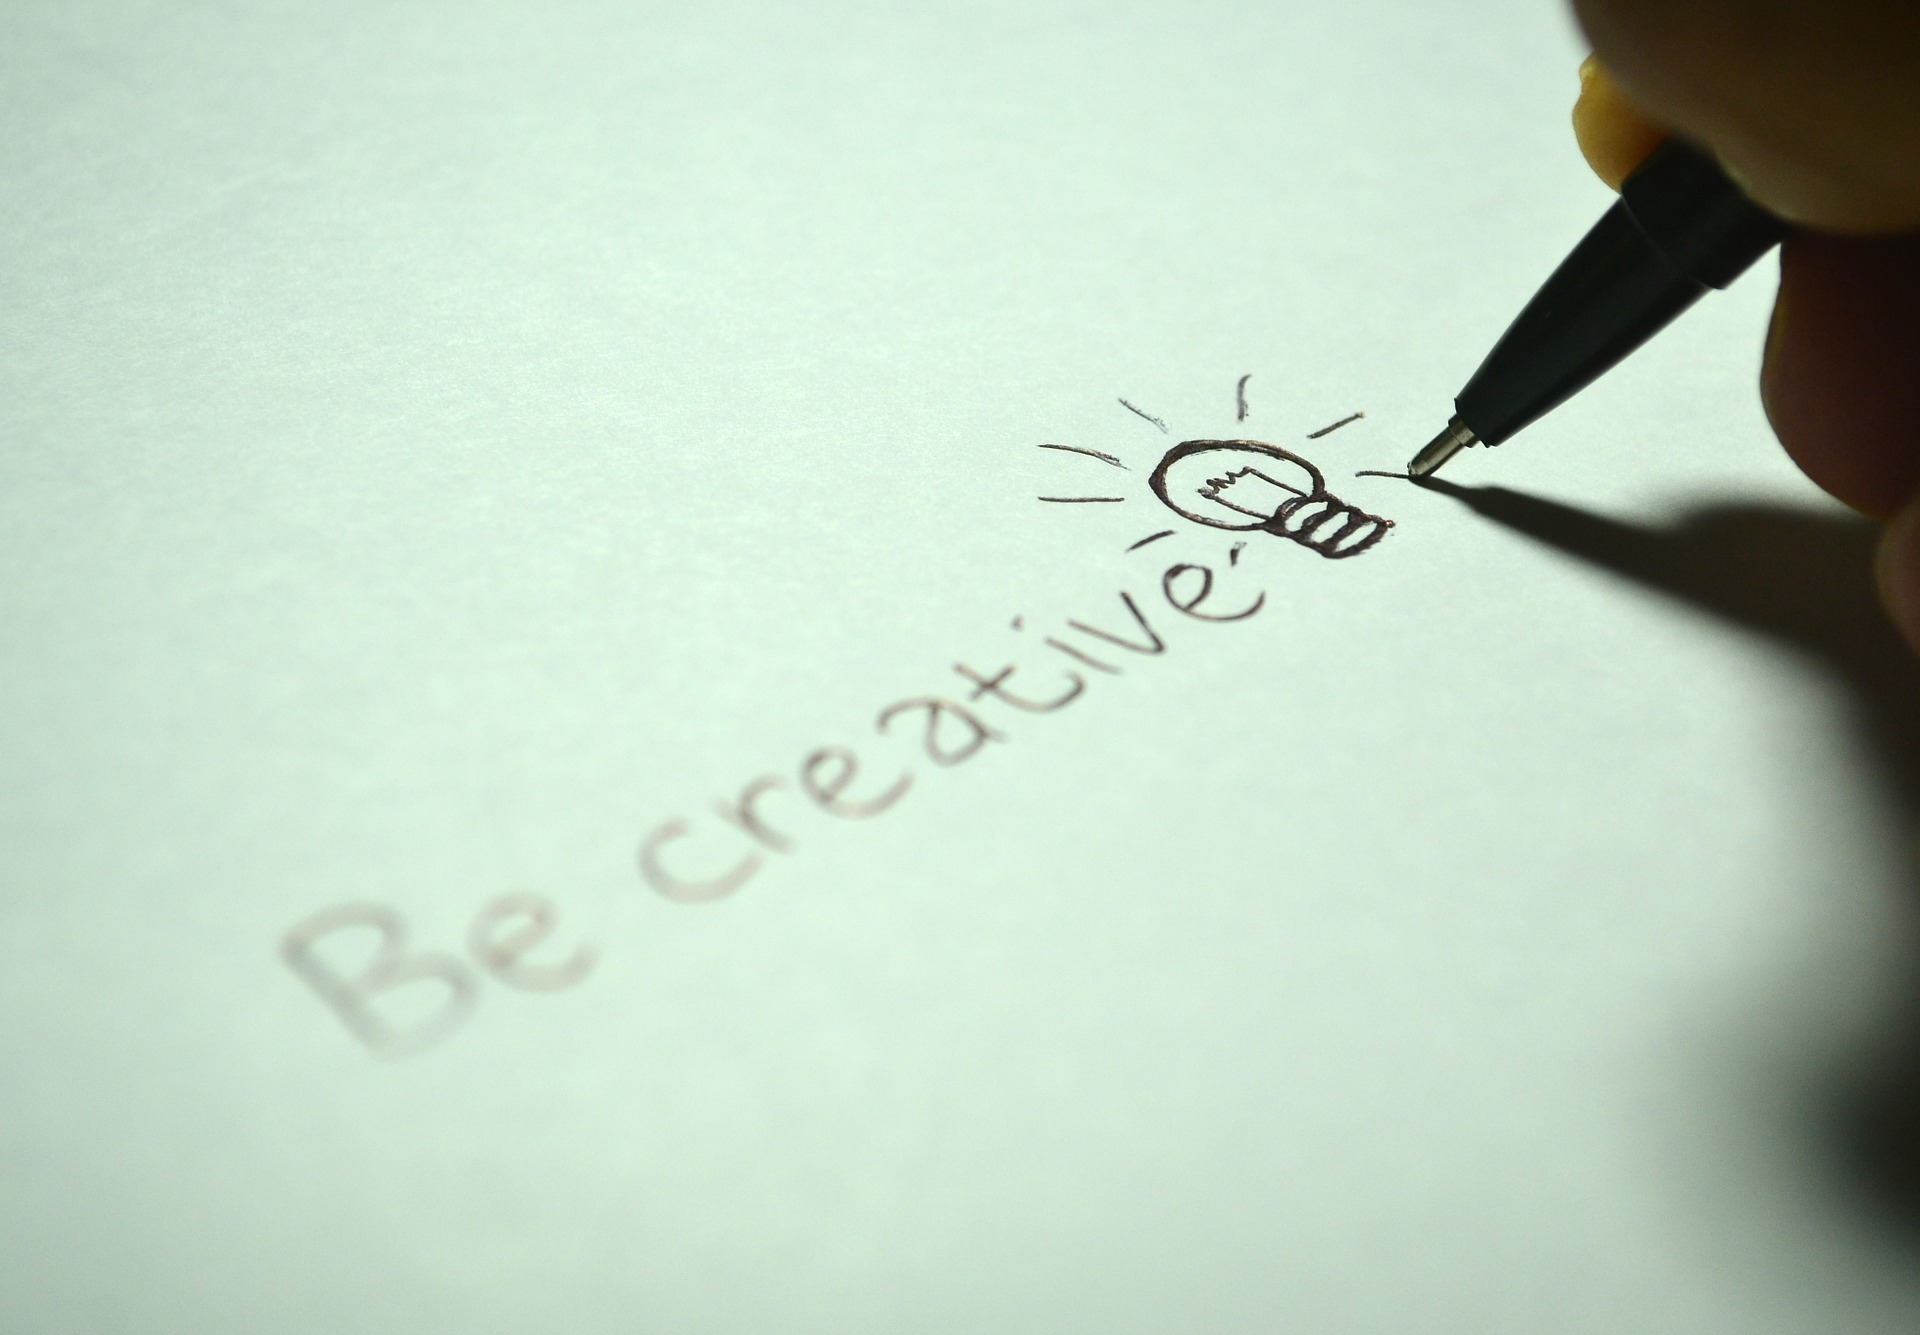 How to Encourage Innovation in the Workplace